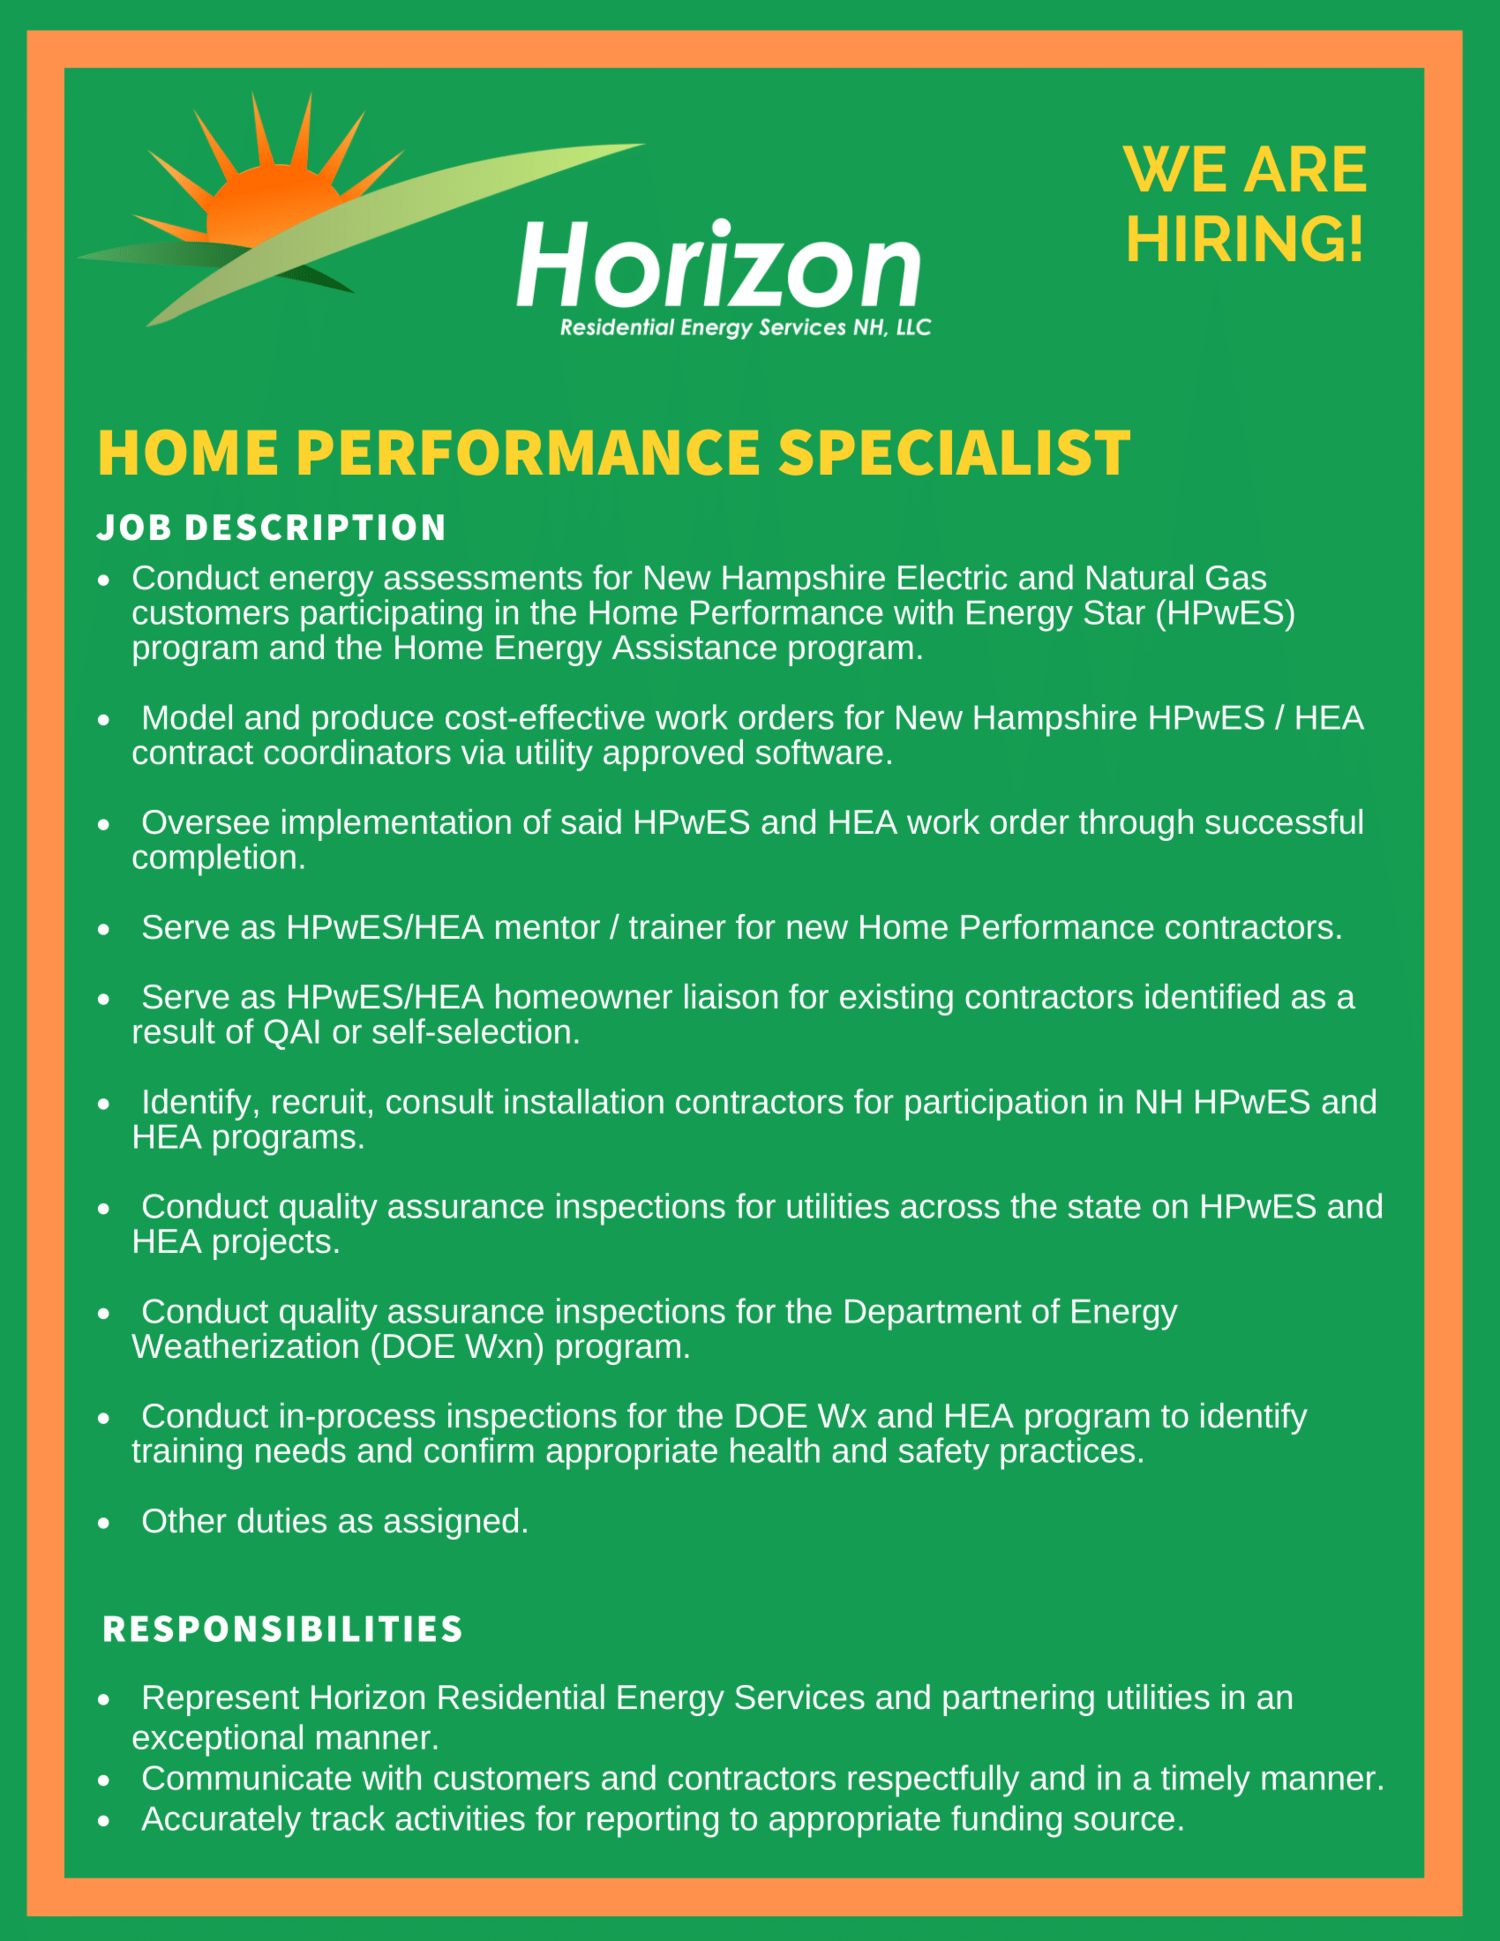 home performance specialist job ad-1.png